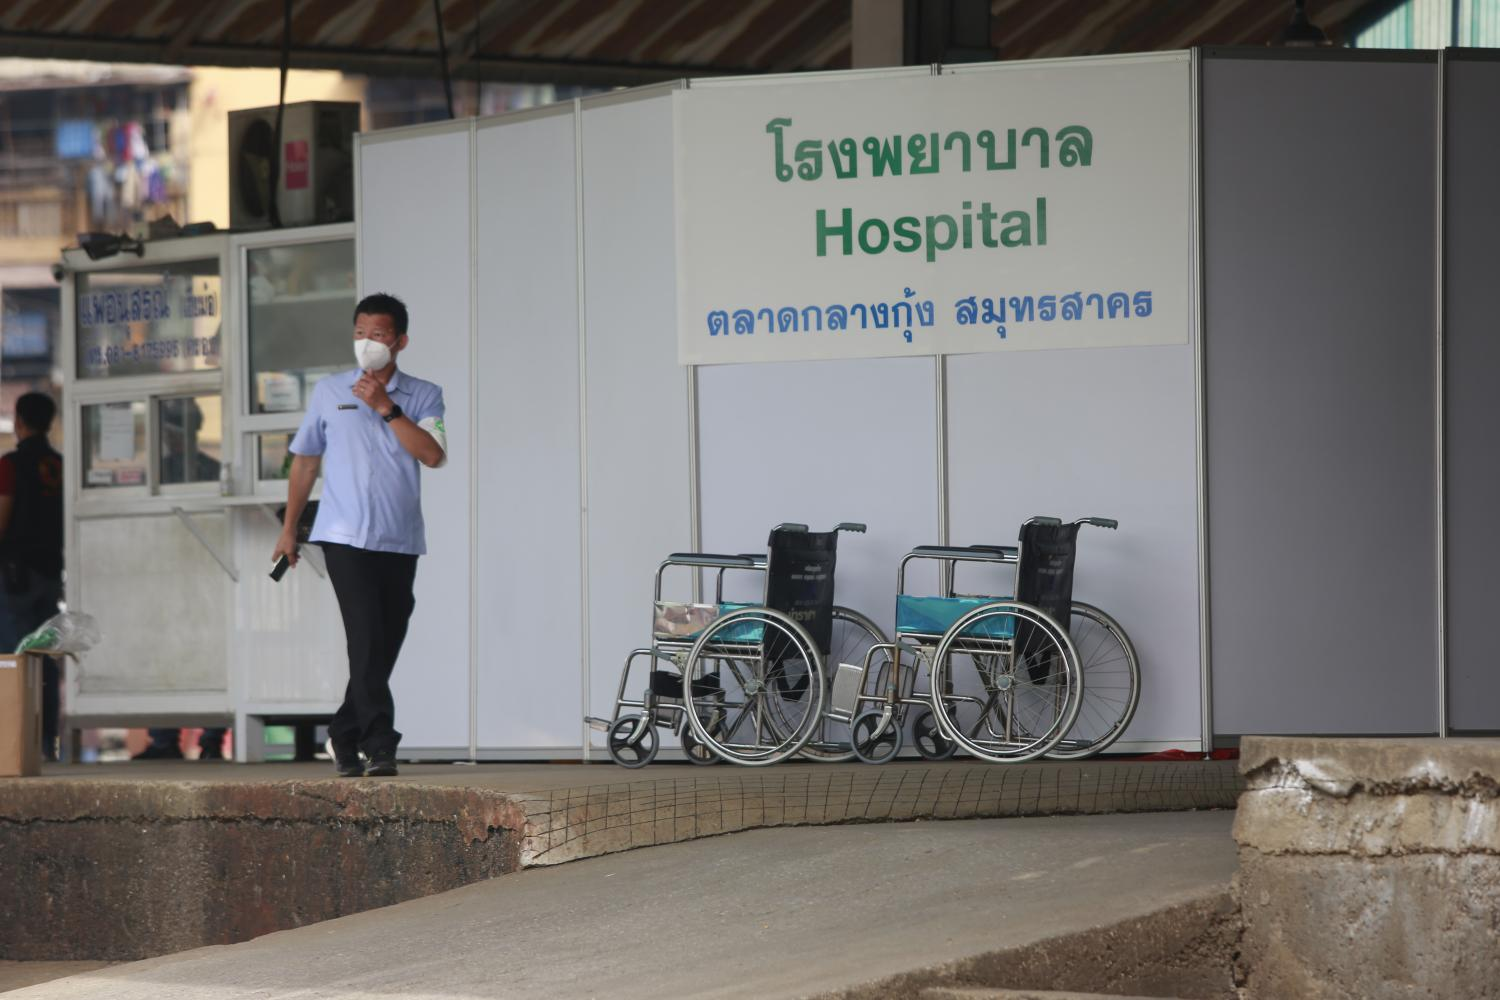 A field hospital is set up at the Central Shrimp Market in Samut Sakhon to provide tests and treatments for Covid-19 following a large cluster of infections among migrant workers at the market. (Photo by Arnun Chonmahatrakool)